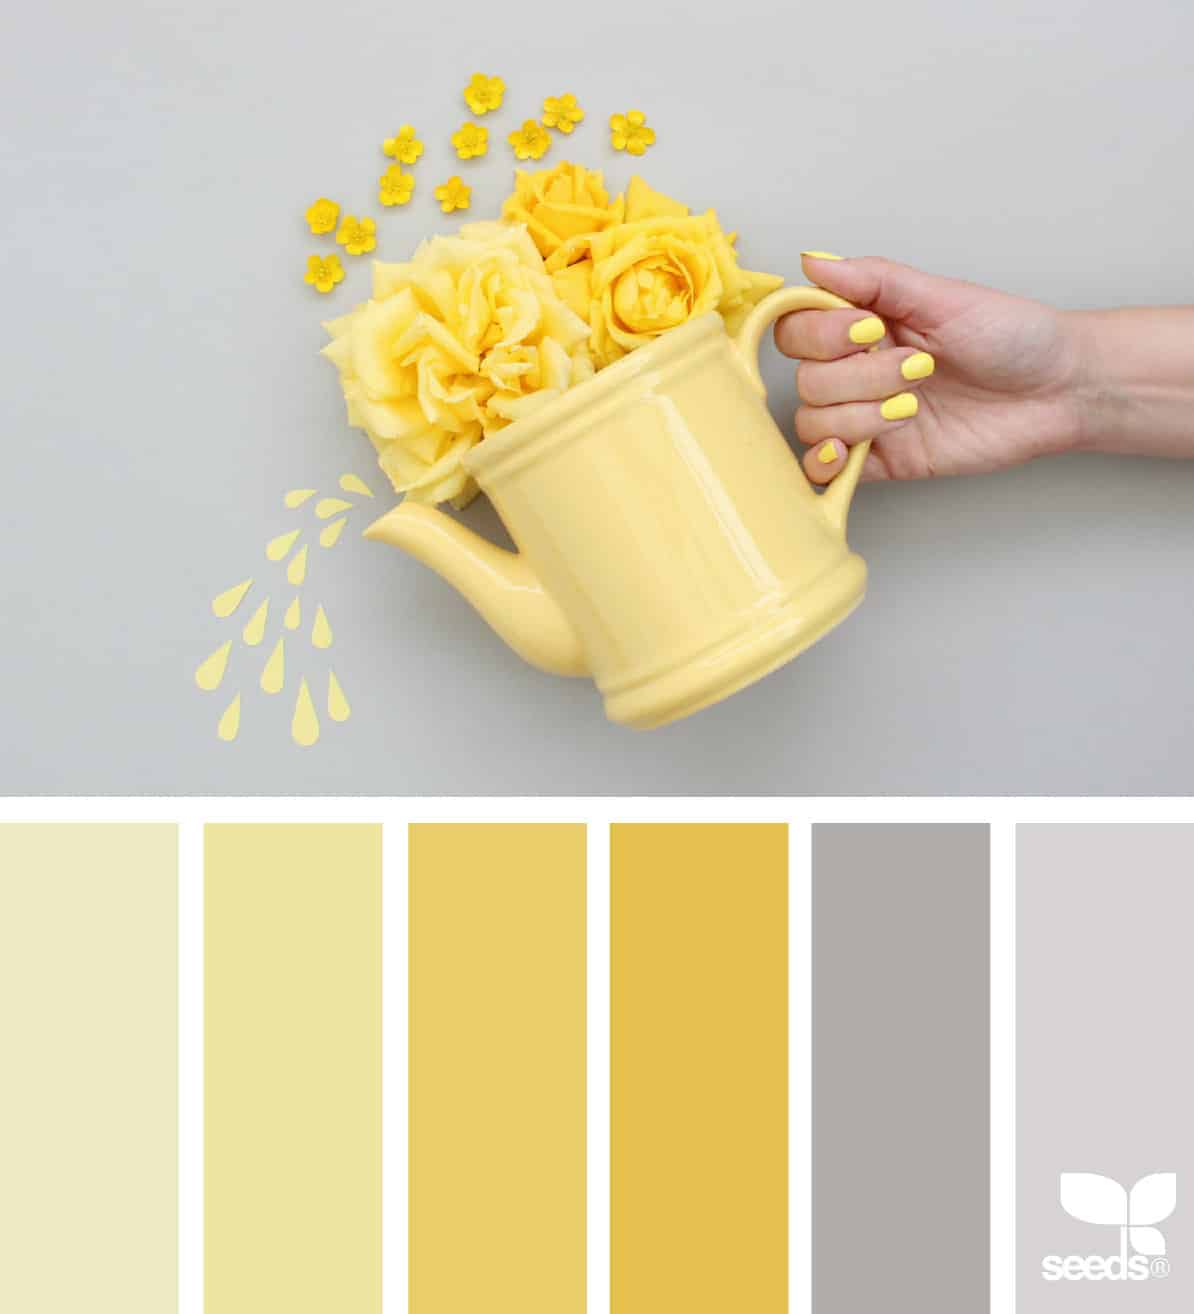 yellow watering can with yellow flowers being poured out by a hand